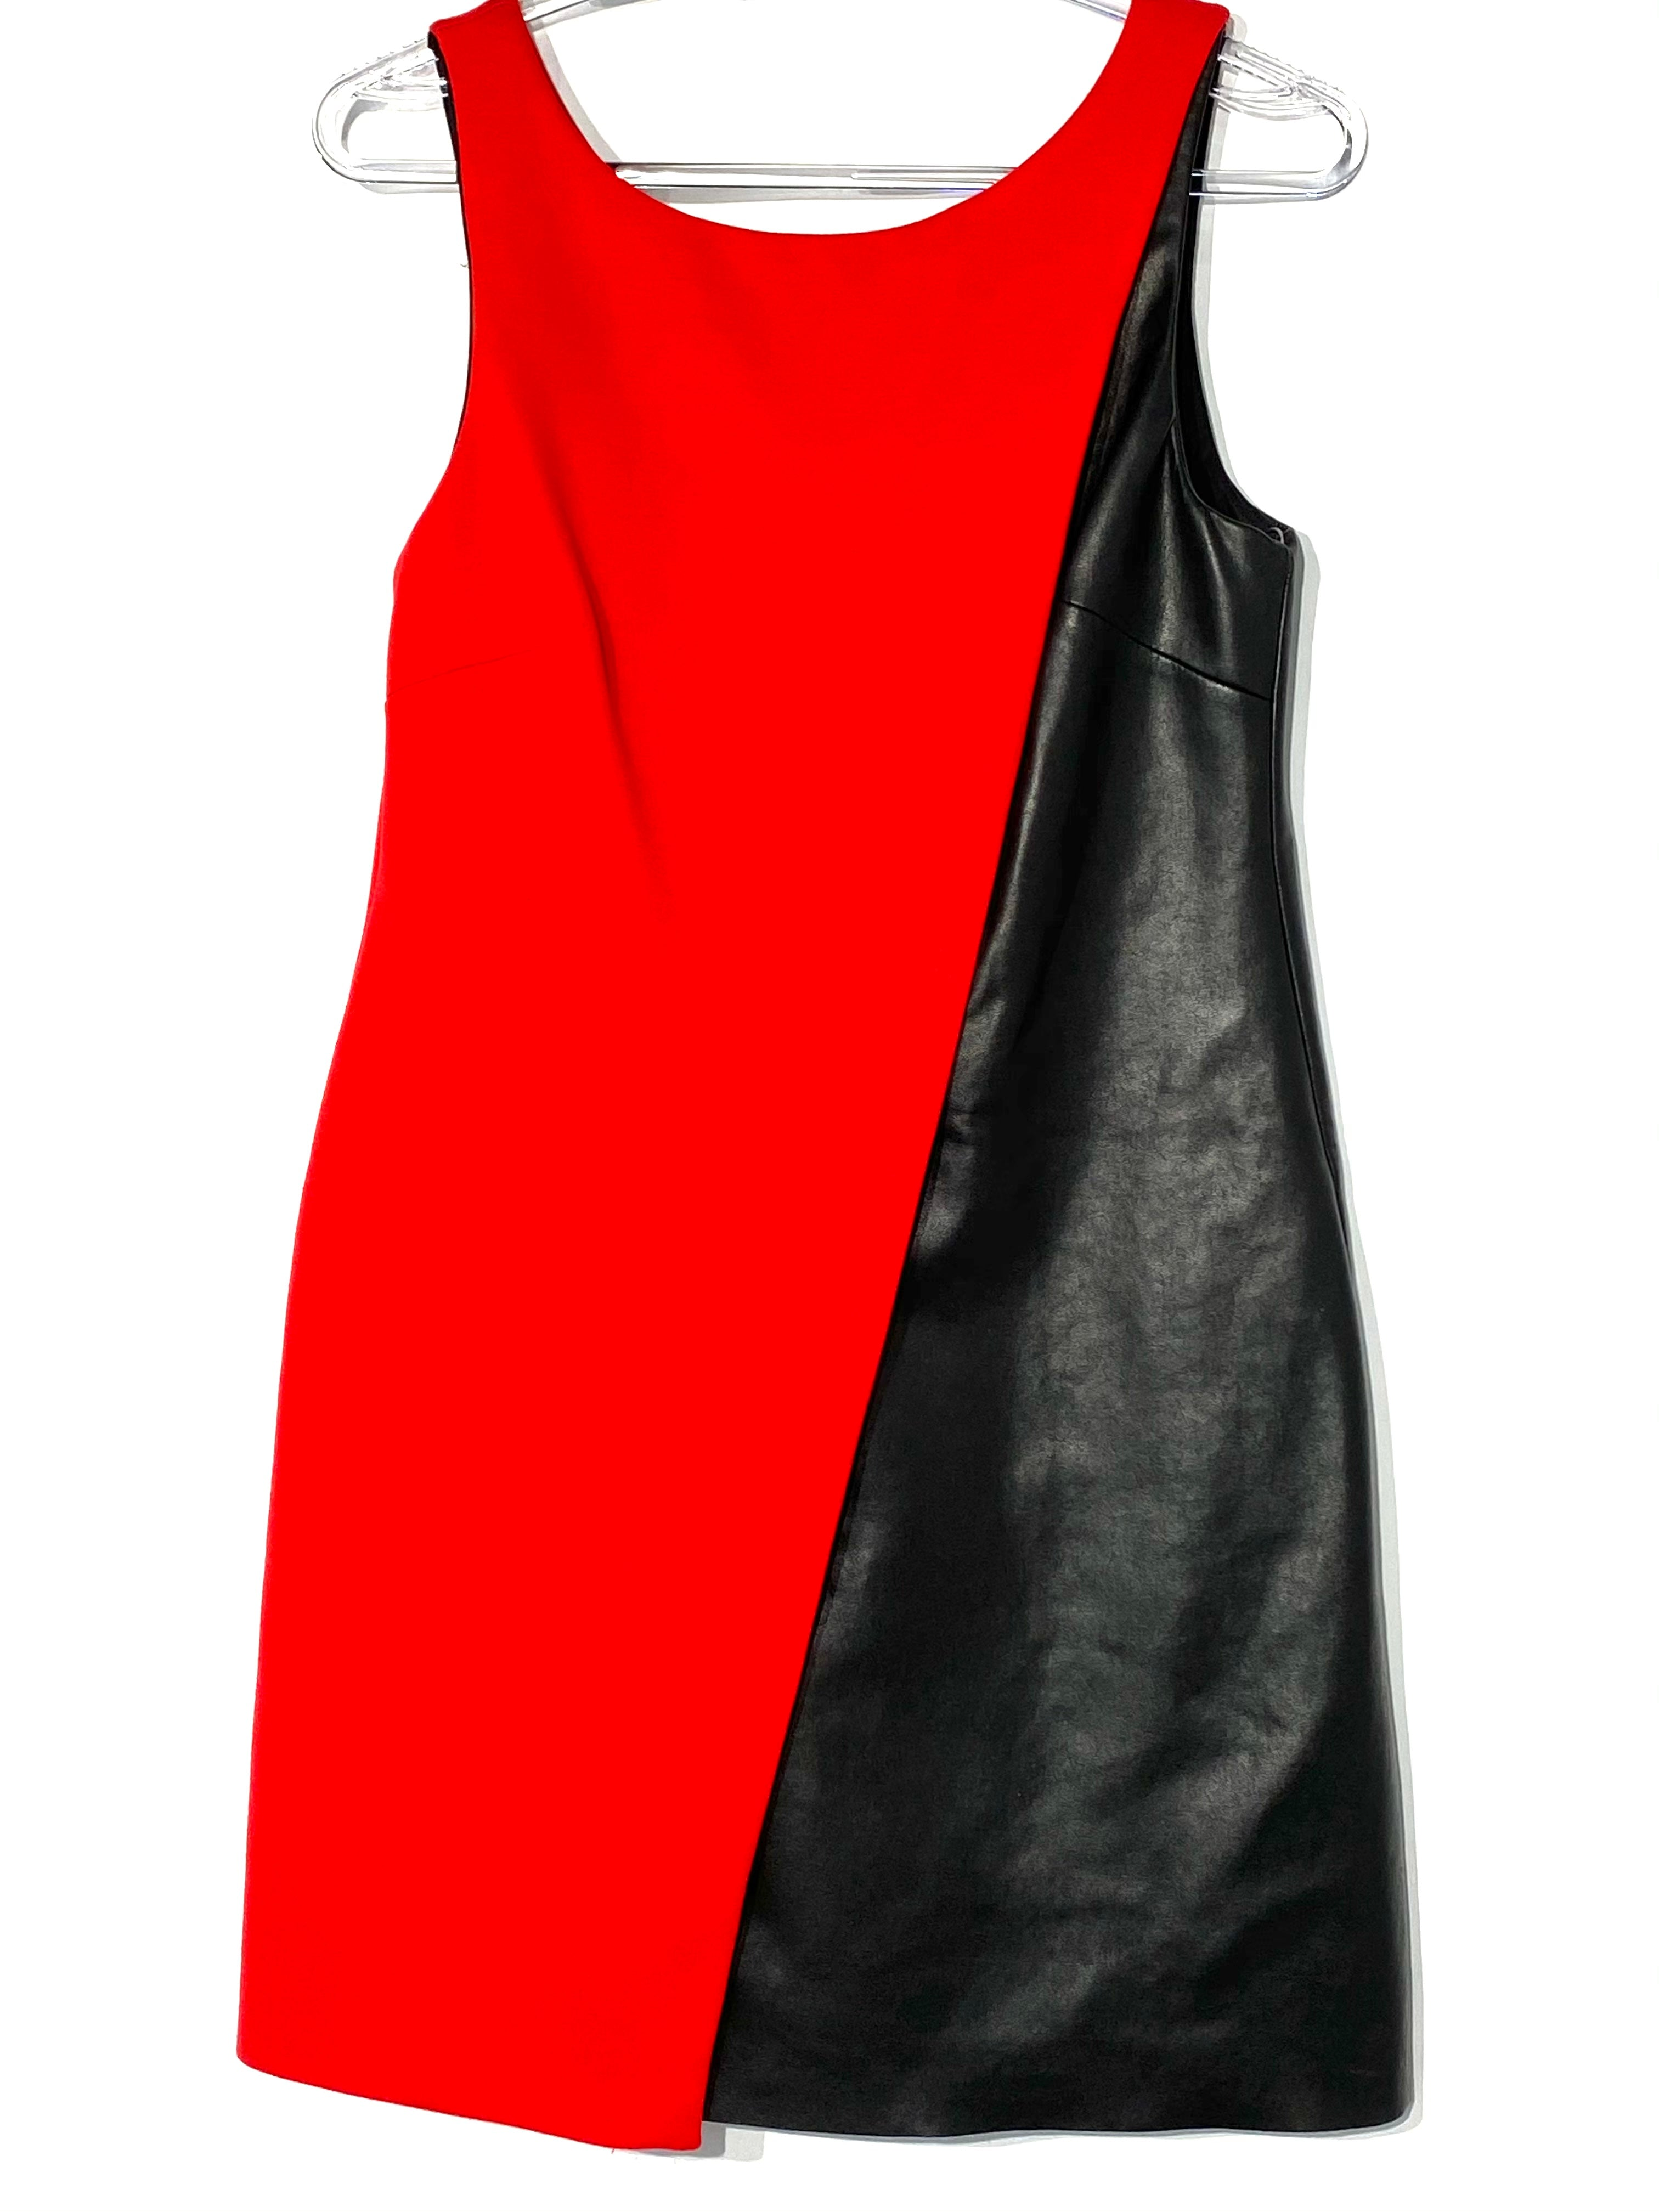 Primary Photo - BRAND: BAILEY 44 <BR>STYLE: DRESS SHORT SLEEVELESS <BR>COLOR: RED BLACK <BR>SIZE: XS <BR>SKU: 262-26275-68702<BR>LEATHER LOOK